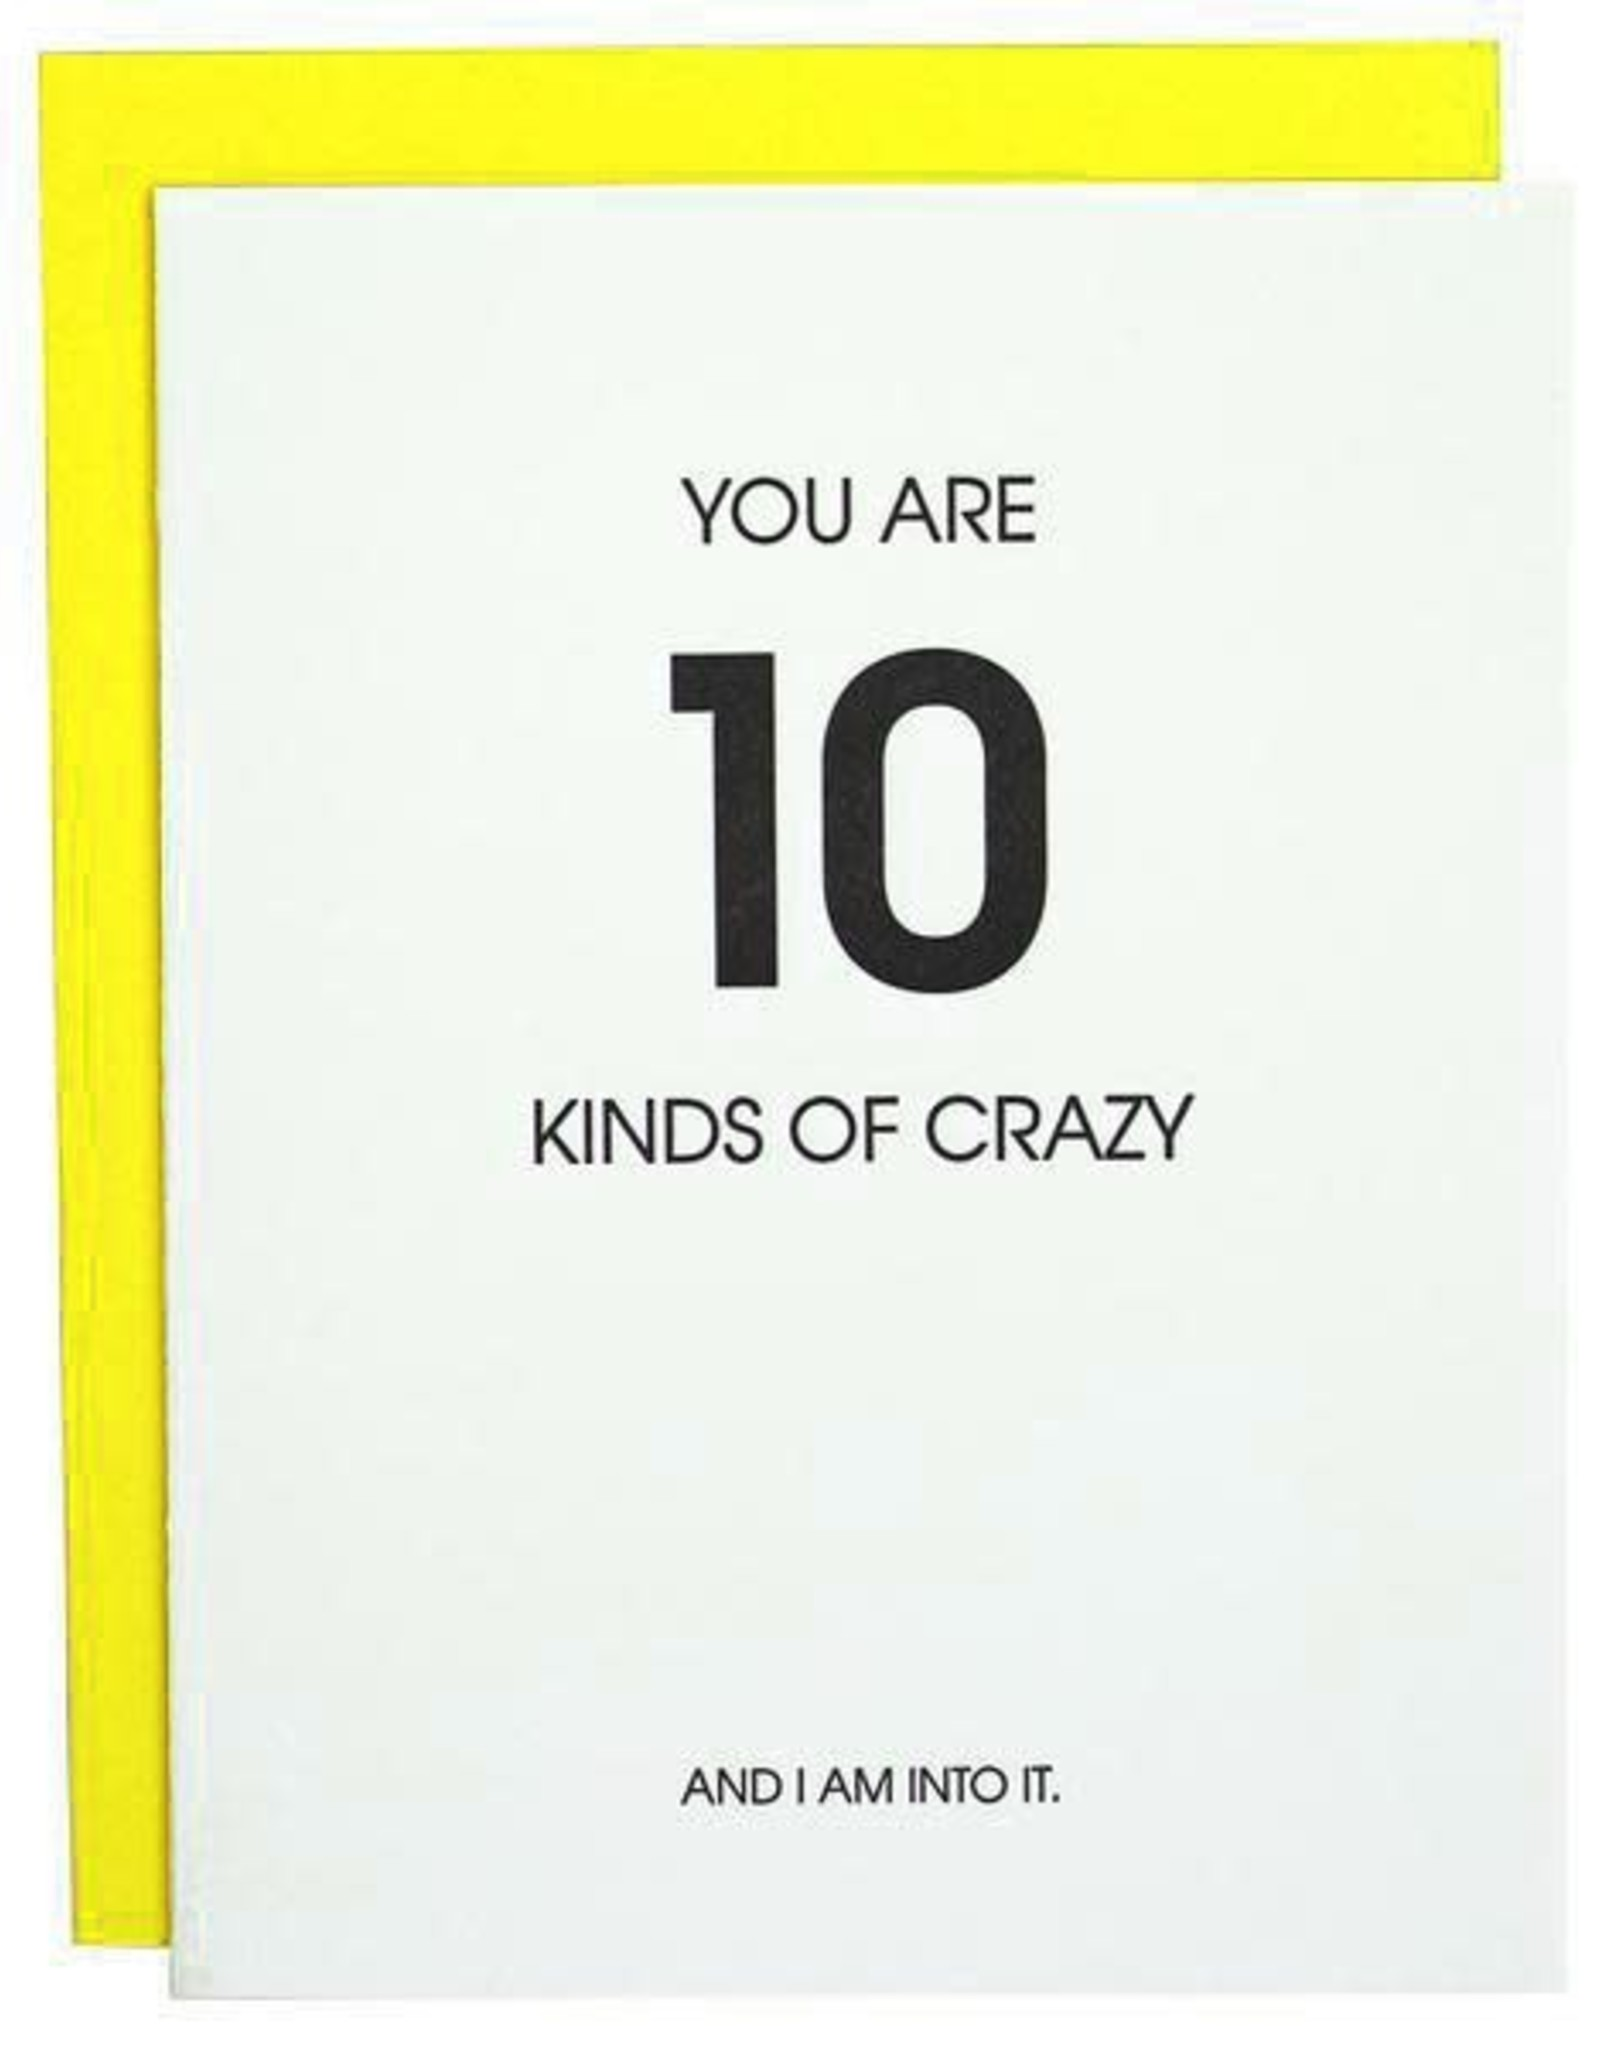 Chz-Ggn You Are 10 Kinds of Crazy Card